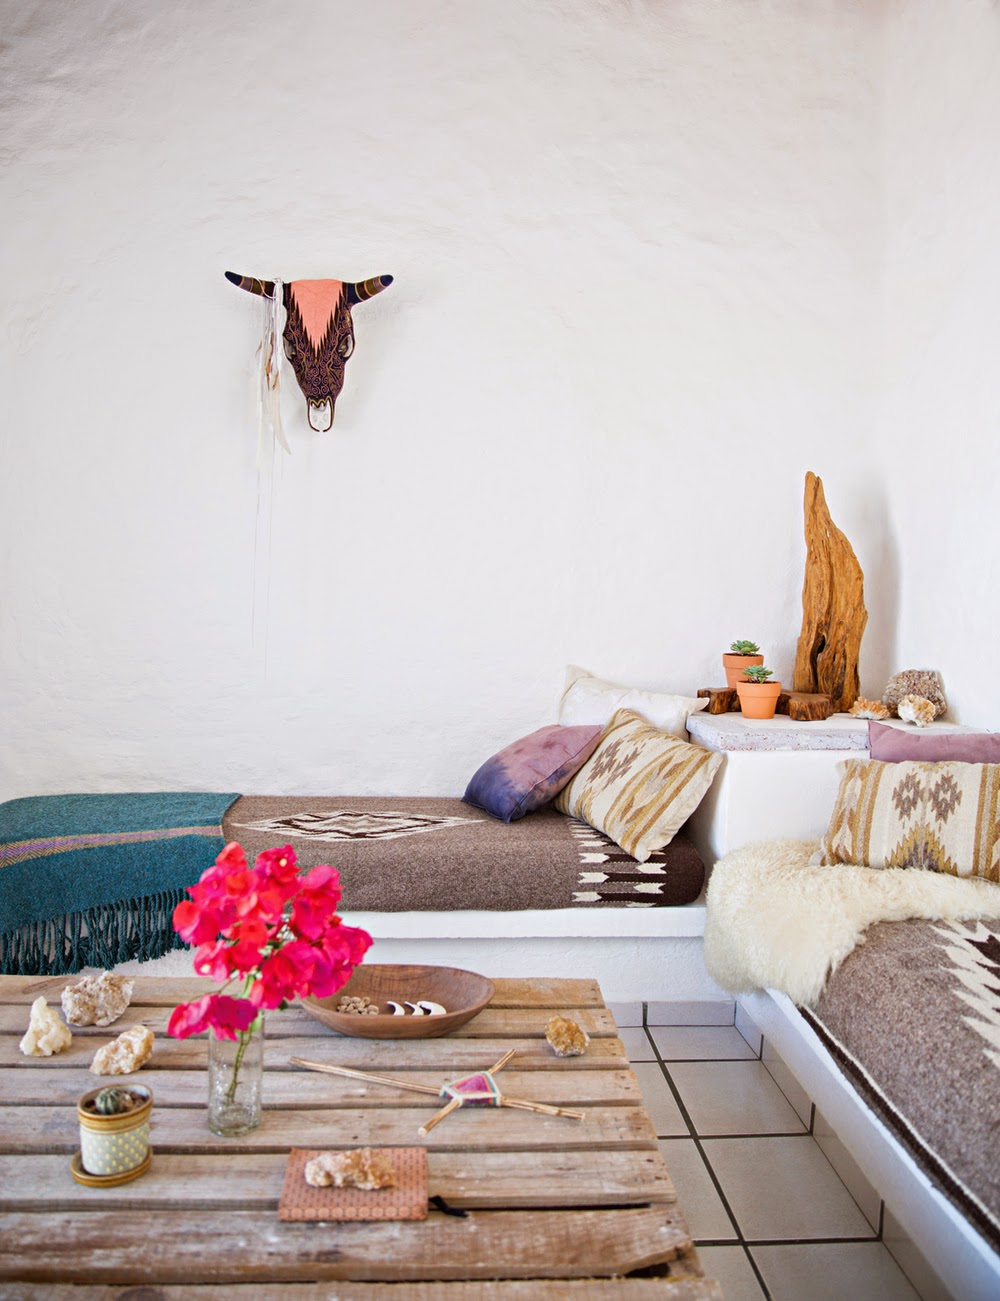 Folk textiles and works of local artisans give the house a unique look and character. I love various dreamcatchers hanging all around, they are so cool2